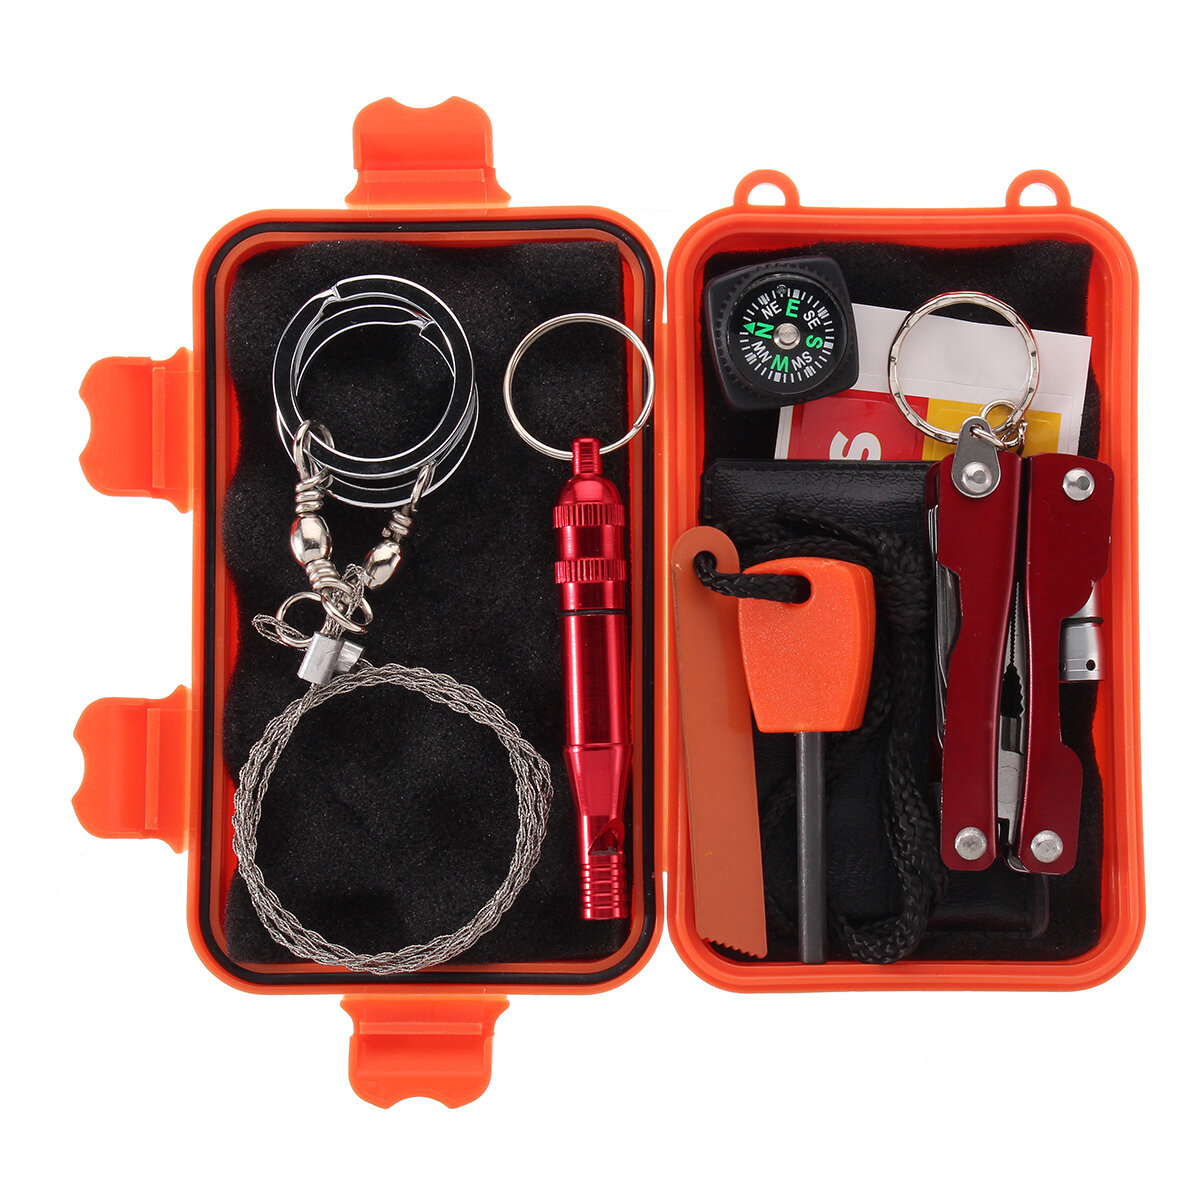 10 in 1 Pro Survival Aid Box Kit Outdoor Travel Hike SOS Emergency Equipment